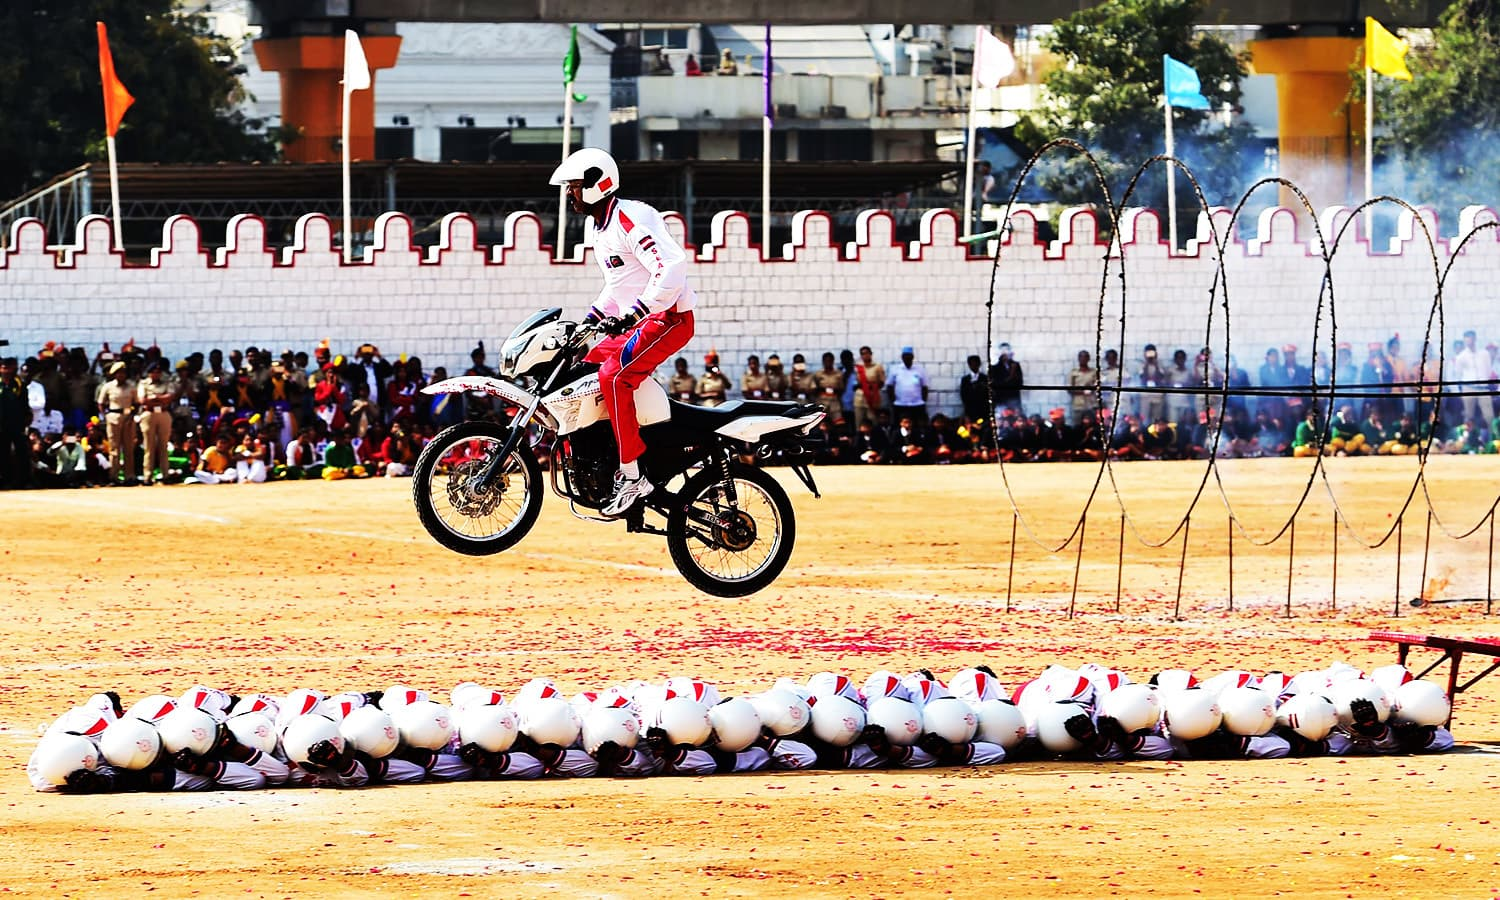 Shwetha Ashwas of the Indian Military Police performs stunts during Republic Day celebrations in Bangalore.—AFP